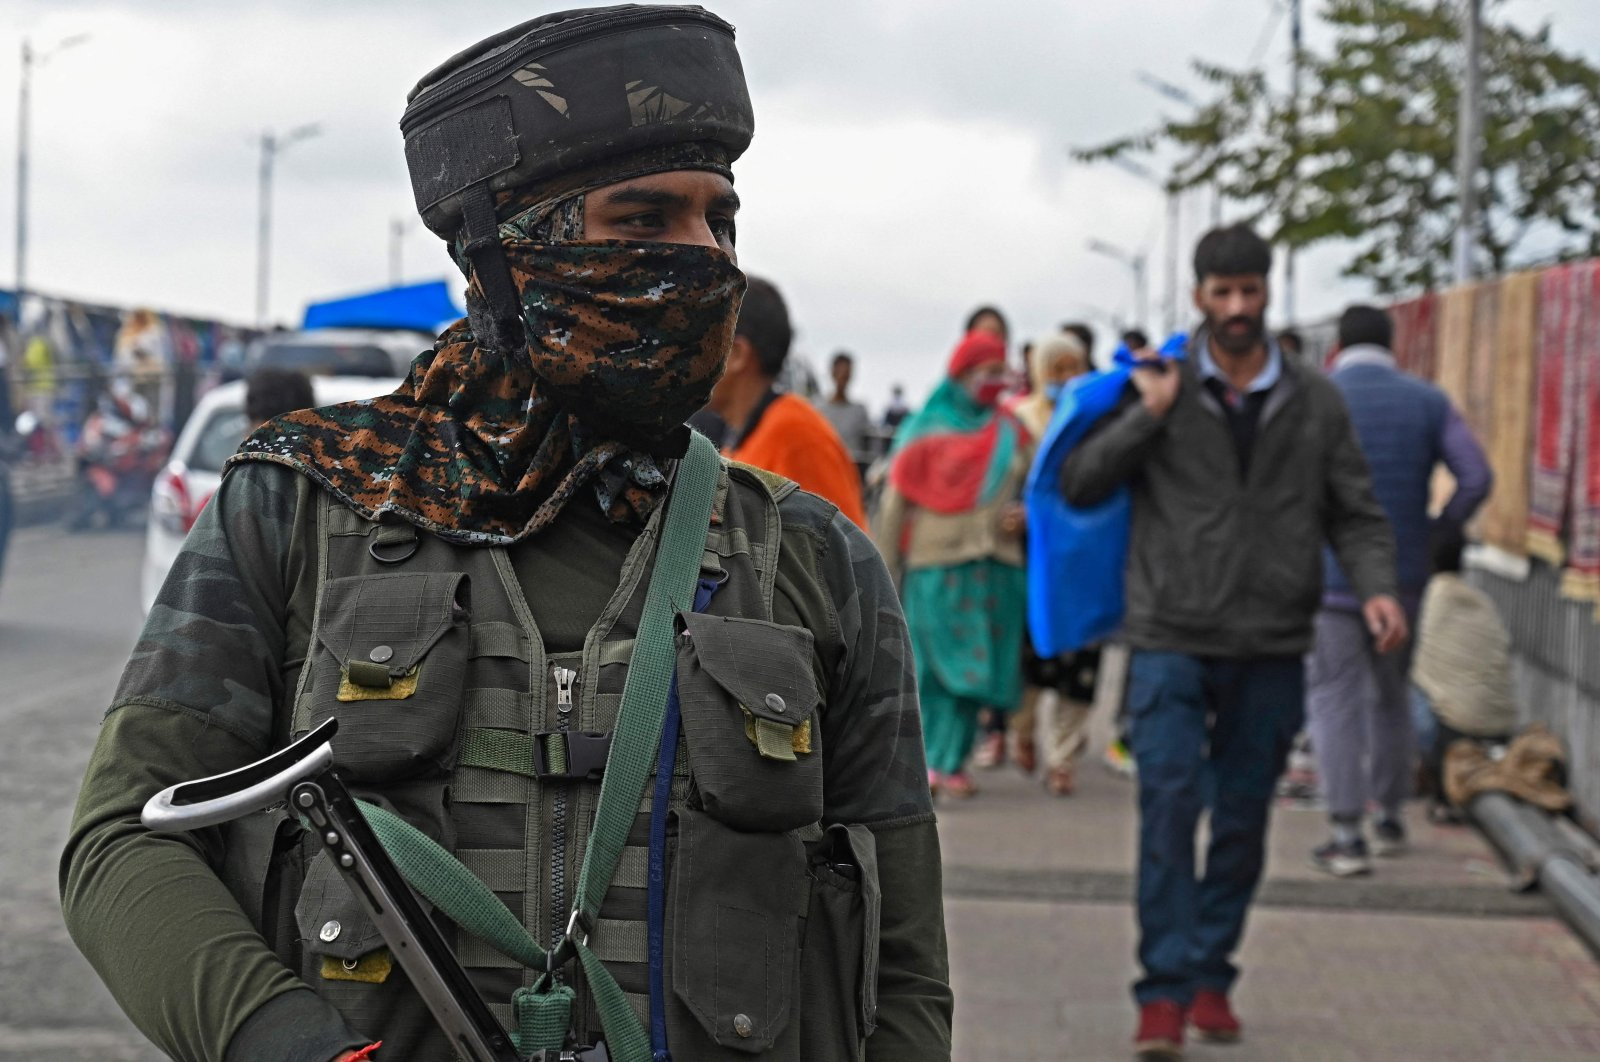 A security personnel stands guard at a market in Srinagar on Oct. 11, 2021, after suspected militants shot dead five soldiers in Indian-administered Kashmir. (AFP)